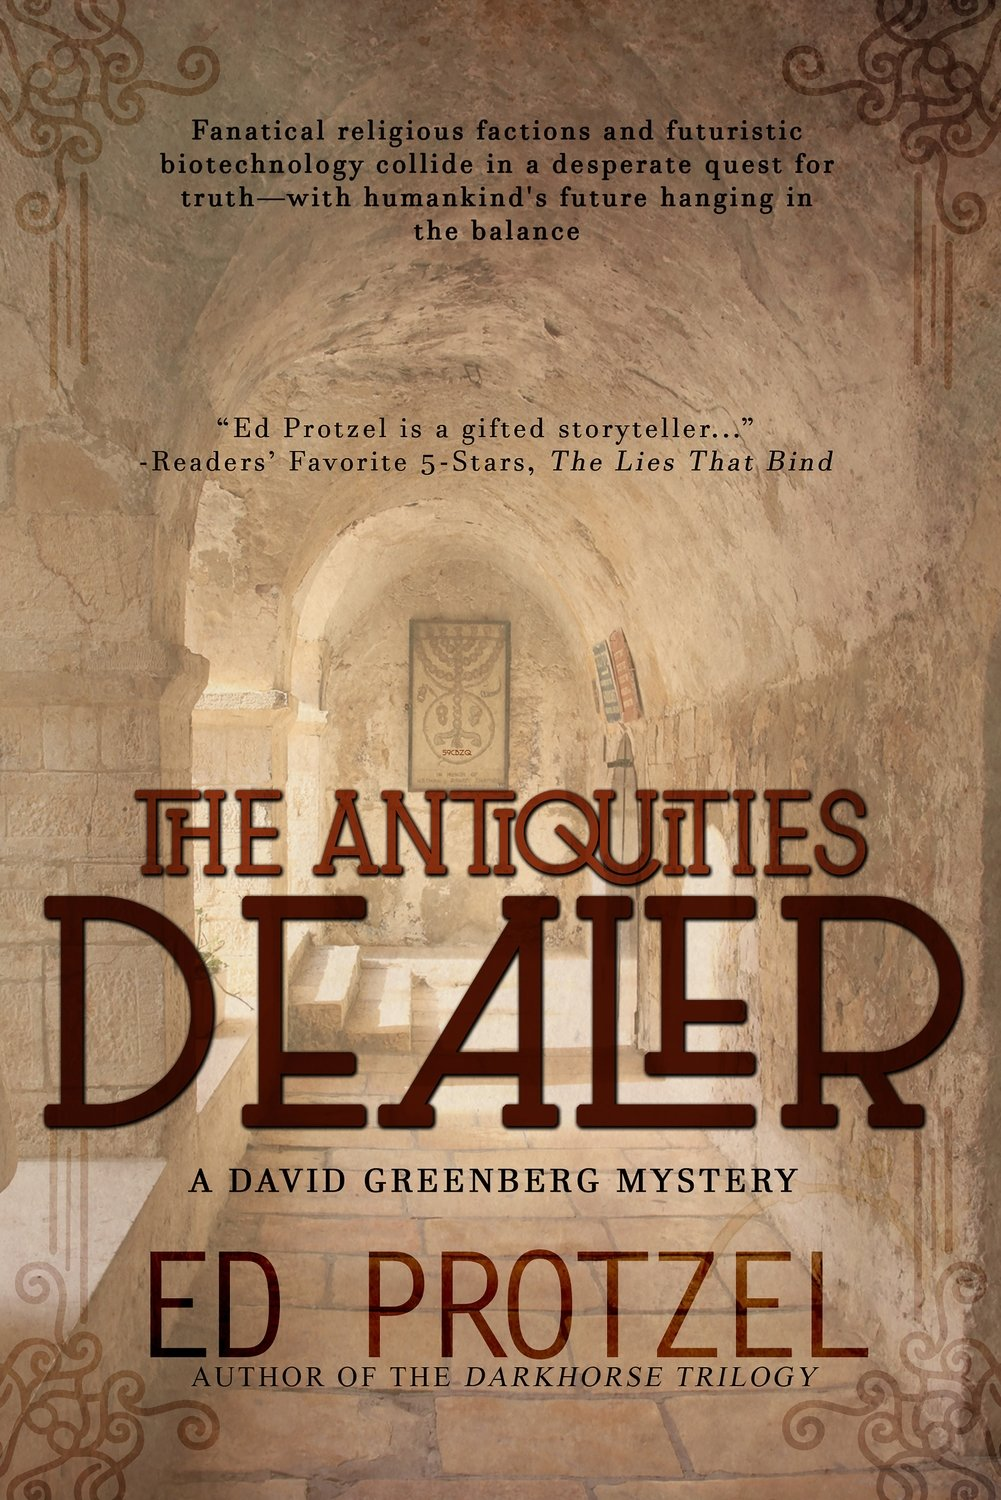 The Antiquities Dealer (A David Greenberg Mystery)